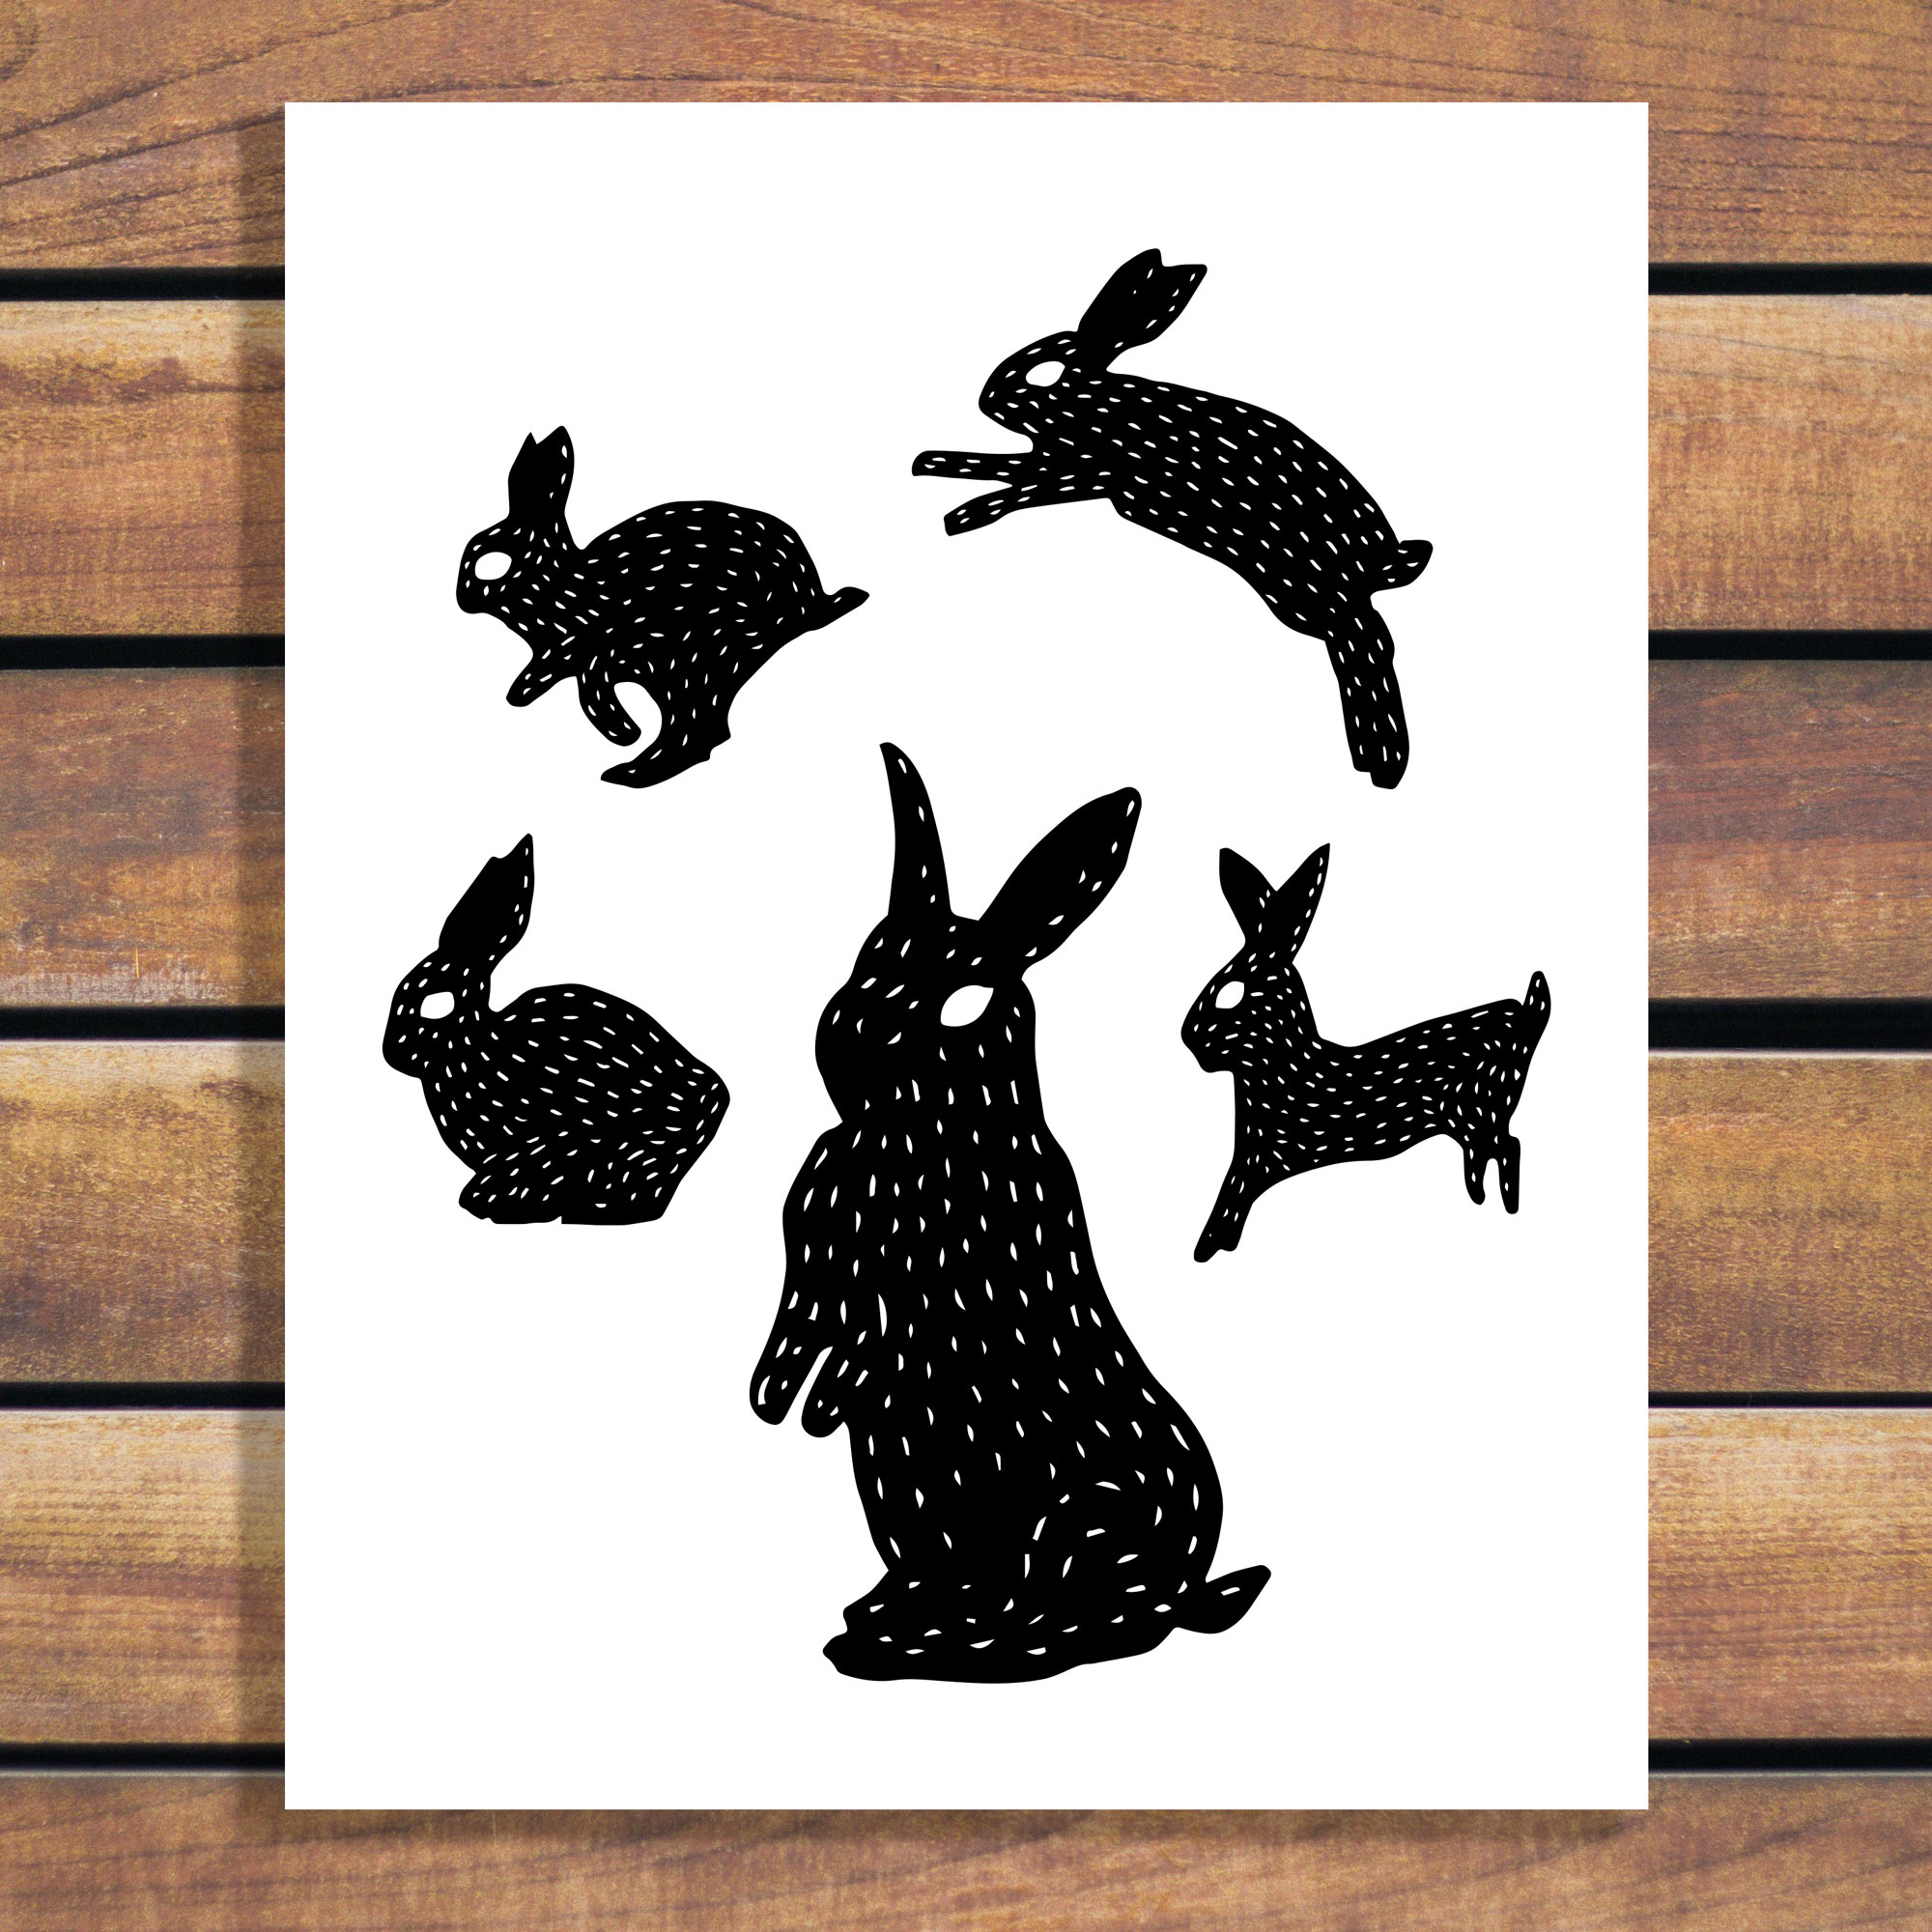 Bunny Art Illustration Print - Rabbit Movement artwork by Brina Schenk - customize the colours and size of art